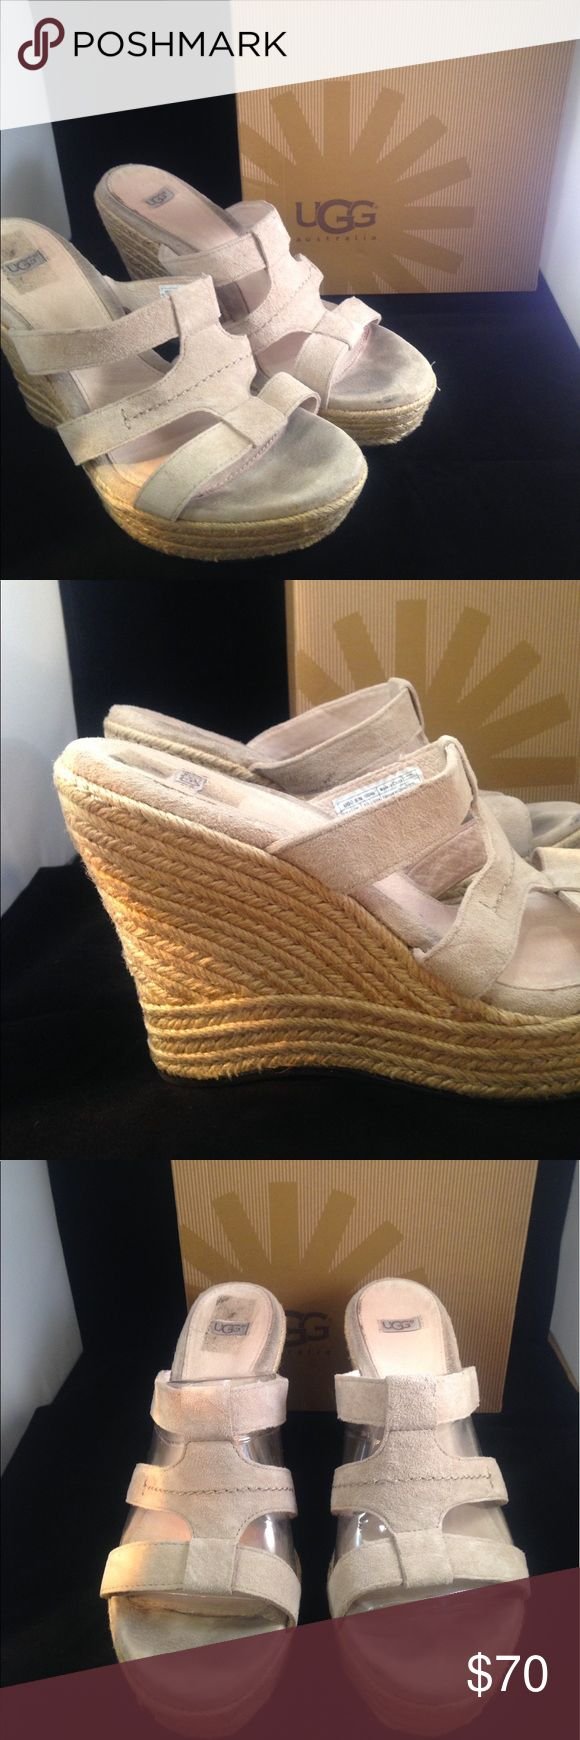 UGG Tawnie Wedge Sandals UGG Tawnie Wedge Sandals. With rich suede upper and leather wrapped cushioned footbed. Has a braided & criss cross detail. The soles have freckled specs in them. Super cute. Excellent condition. Light signs of wear on upper footbed. Size 9. Retail is $130.99. Comes w/original box. UGG Shoes Wedges